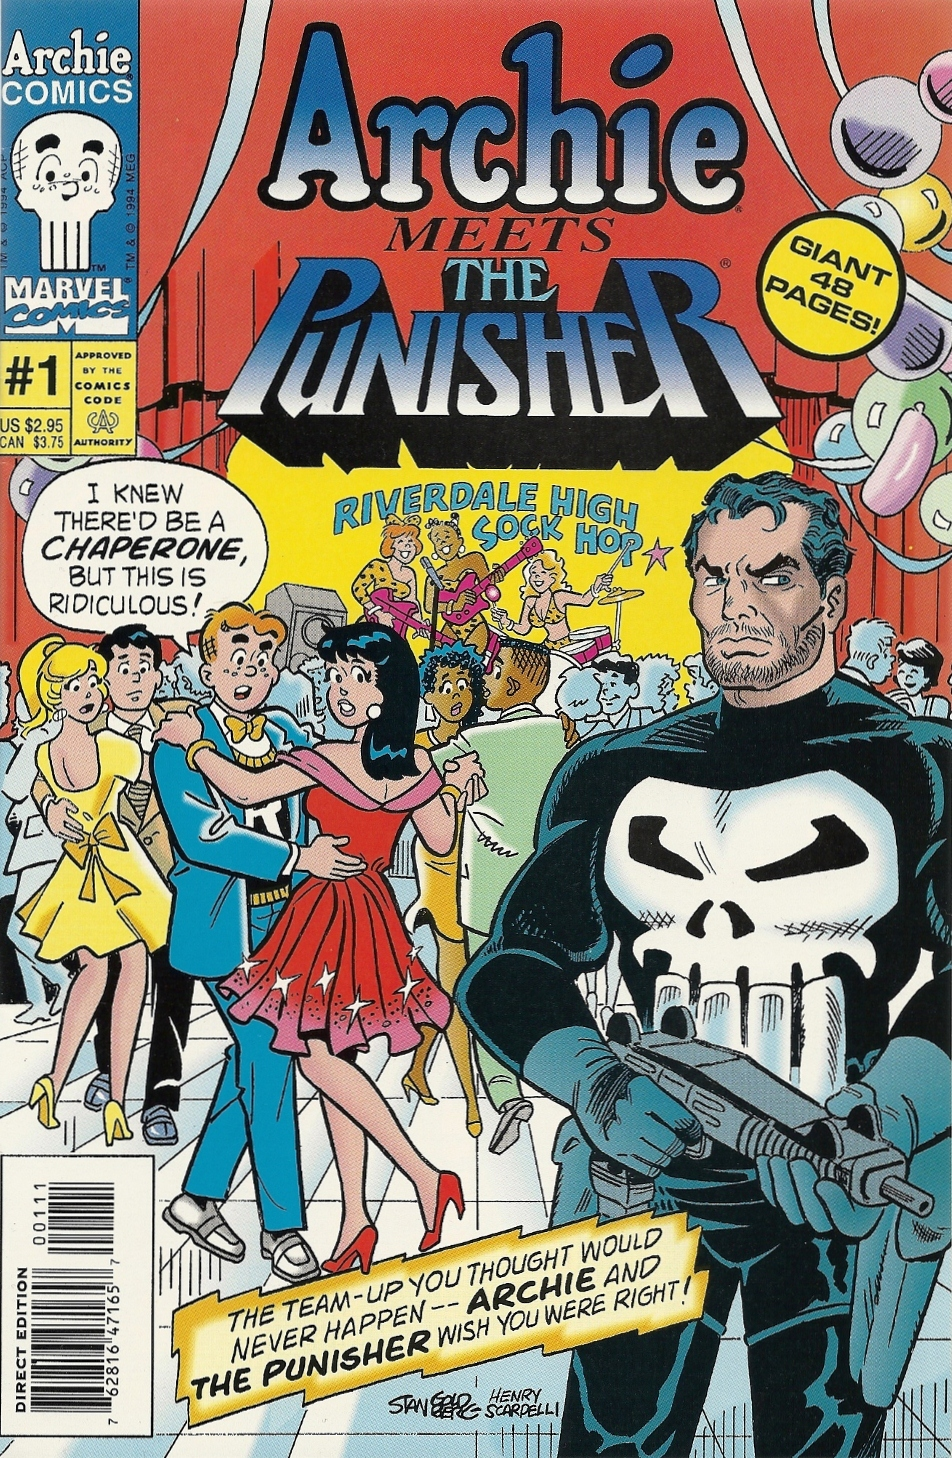 Archie Meets the Punisher (1994) #1, cover by Stan Goldberg.